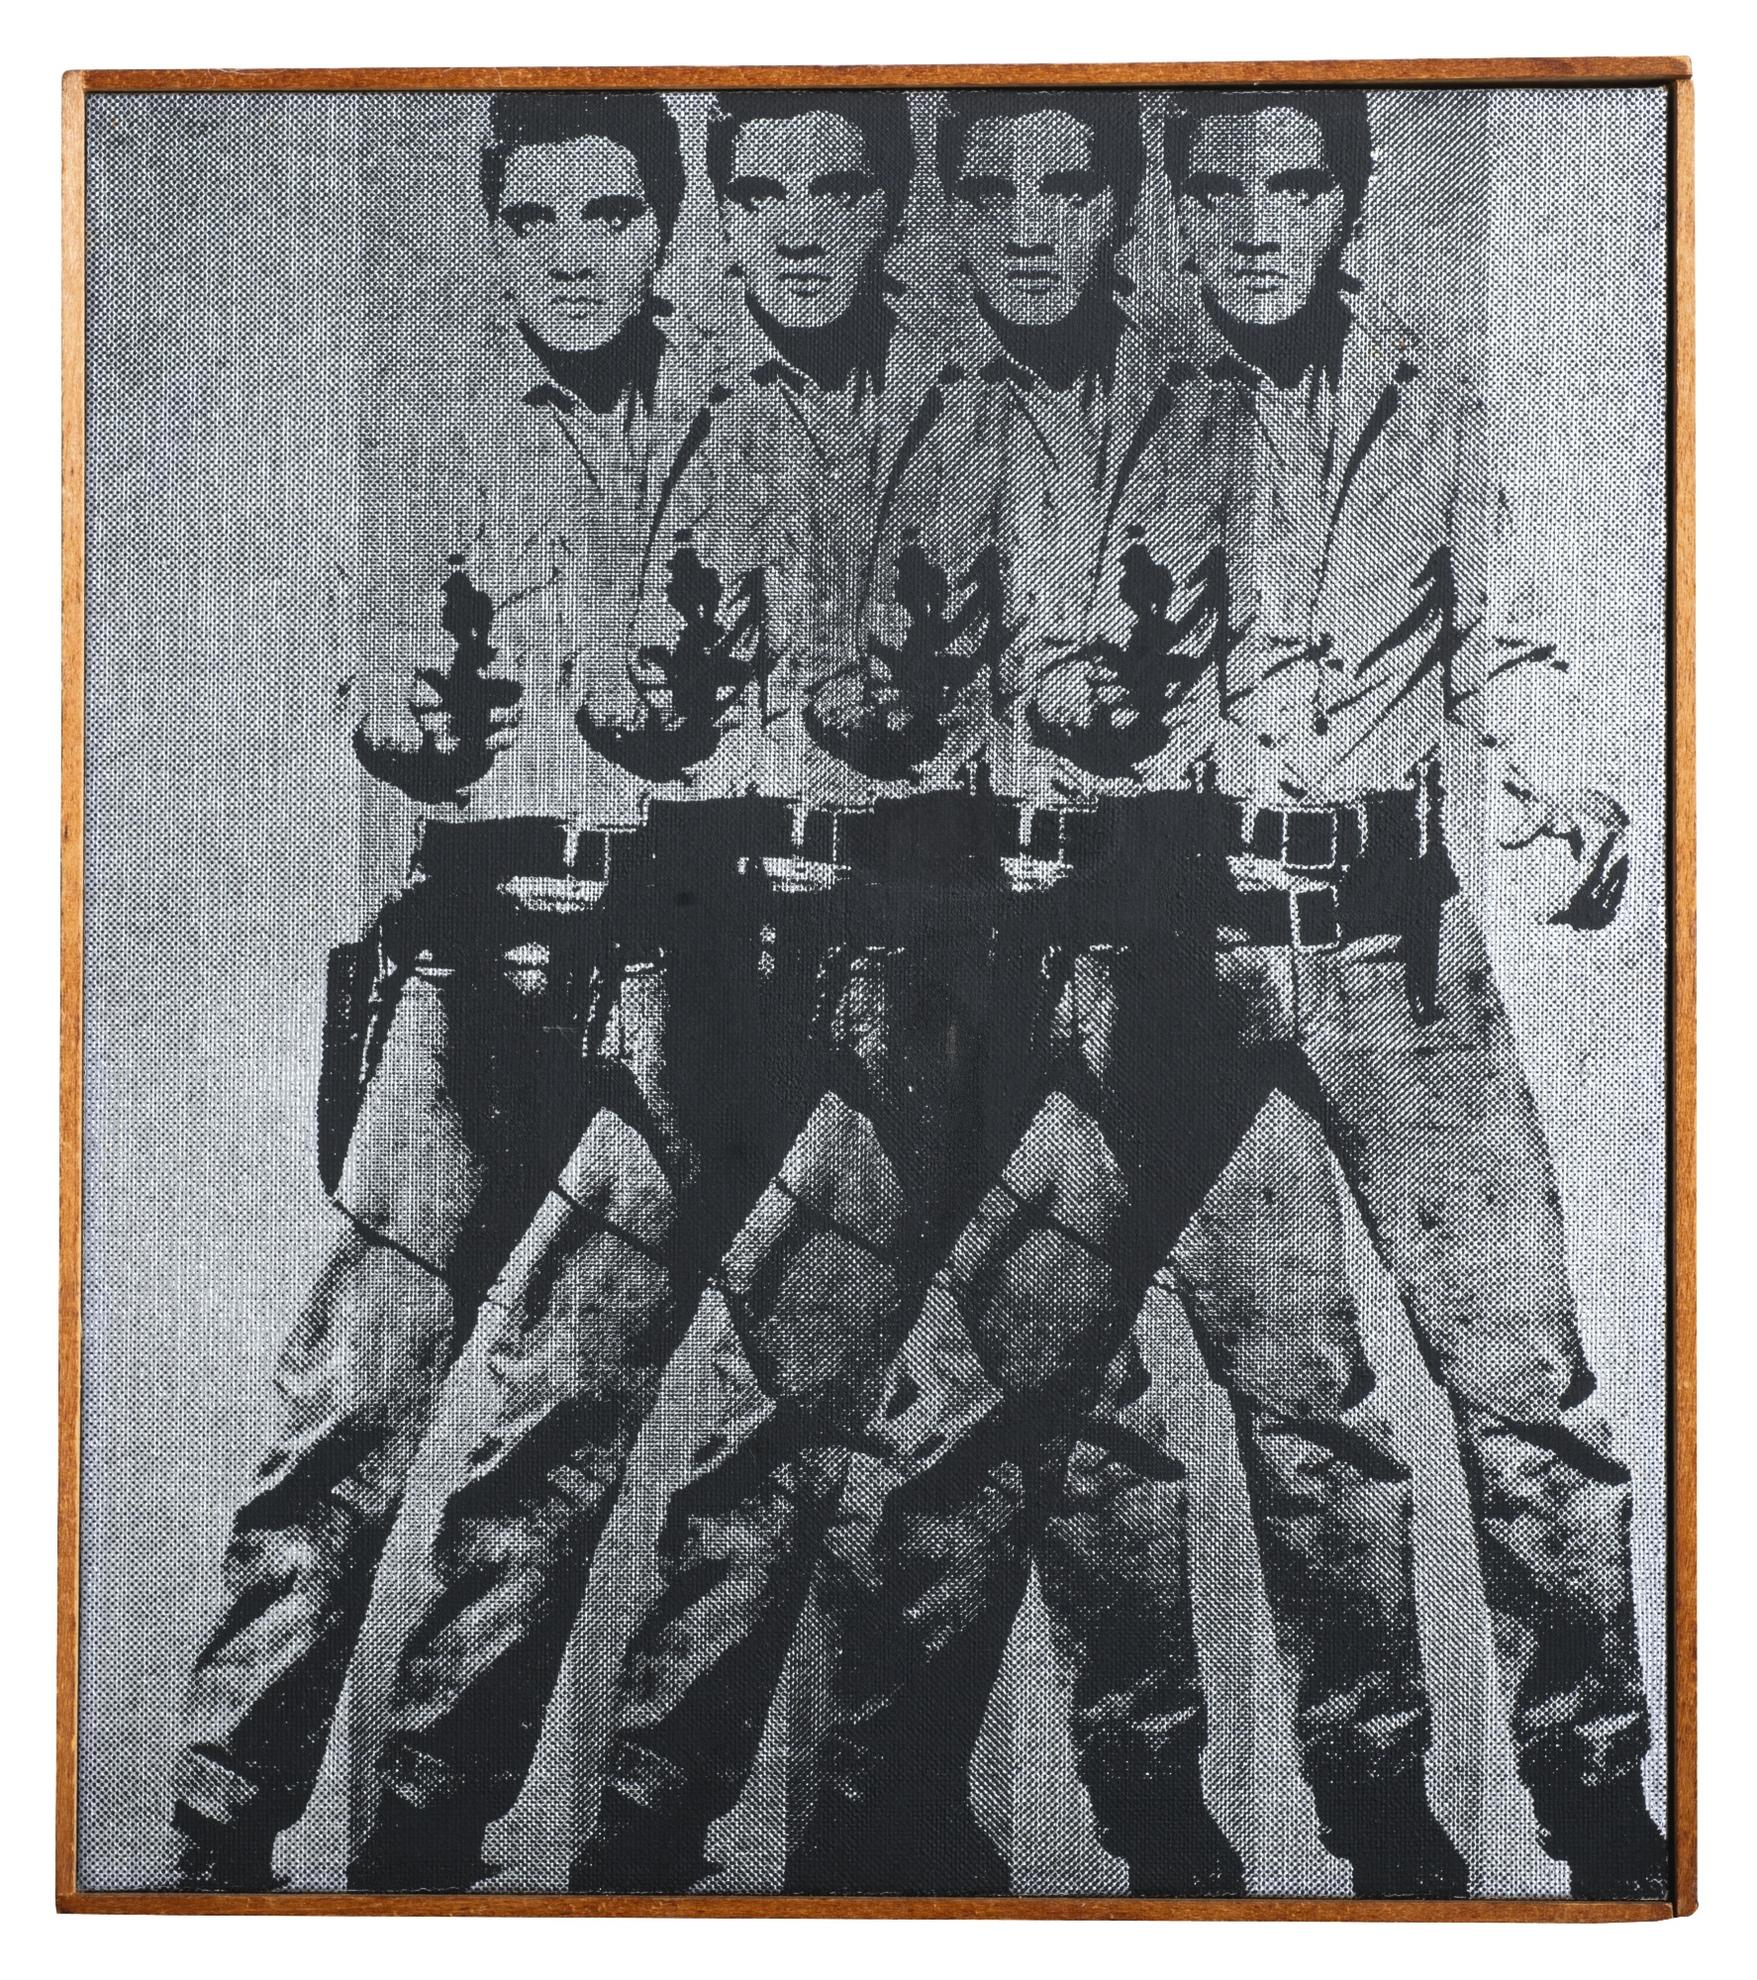 Richard Pettibone-Andy Warhol, 'Elvis', 1964-1968